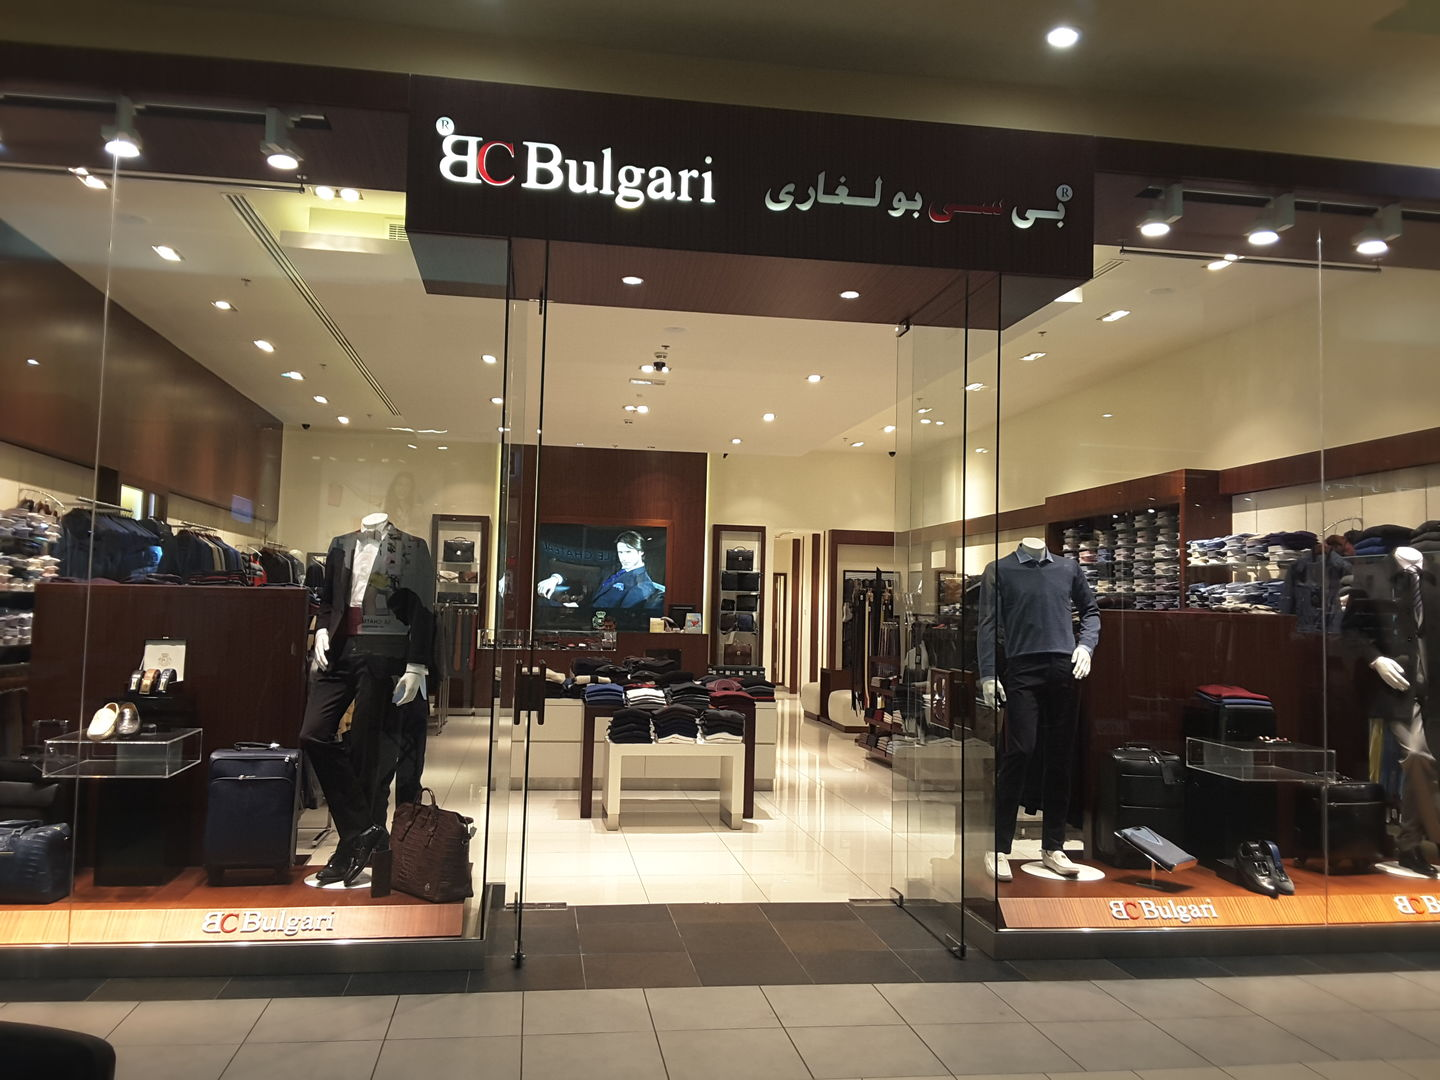 HiDubai-business-bc-bulgari-shopping-apparel-ibn-batuta-jebel-ali-1-dubai-2